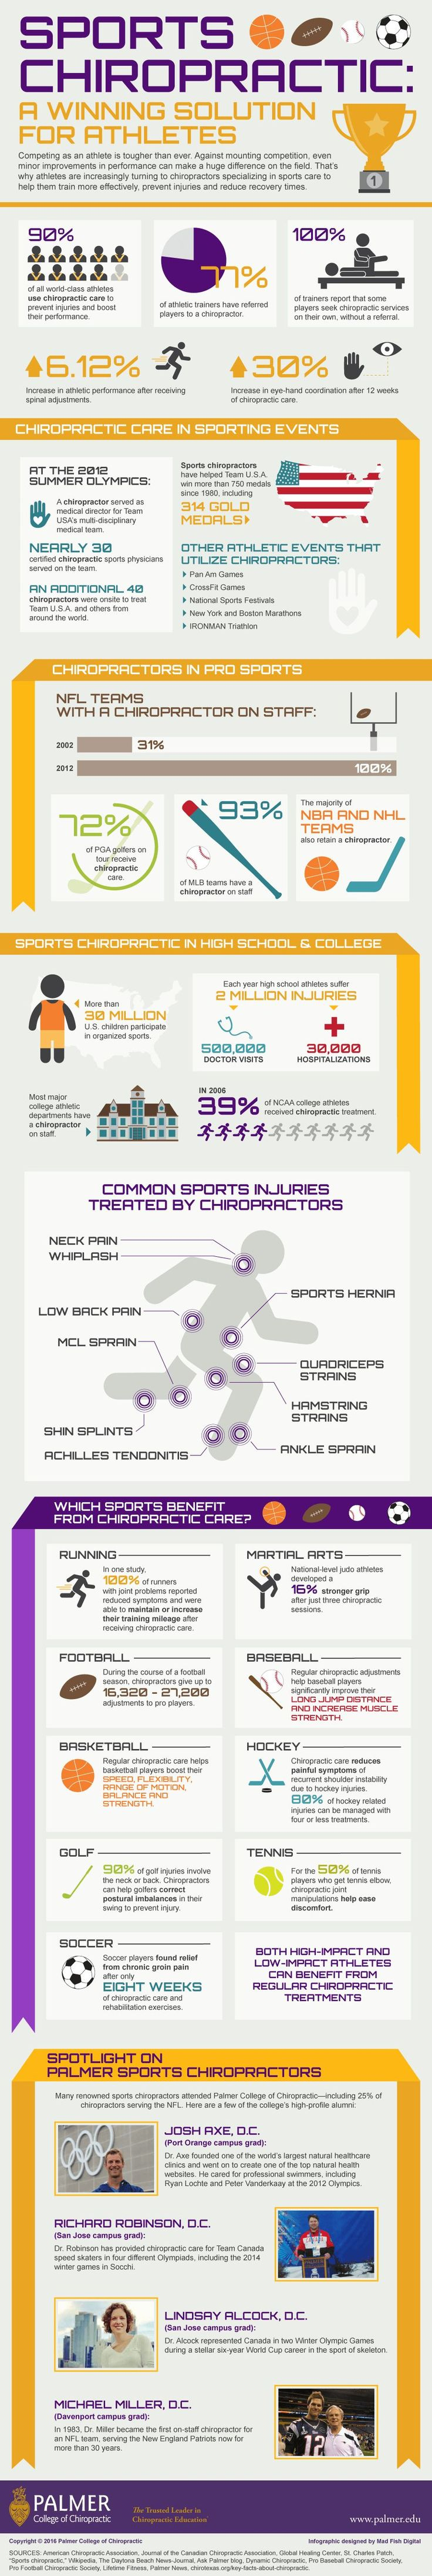 Orange county ca s premier non surgical spinal decompression clinic - Sports Chiropractic A Winning Solution For Athletes 7 Figure Marketer Reveals How To Get More